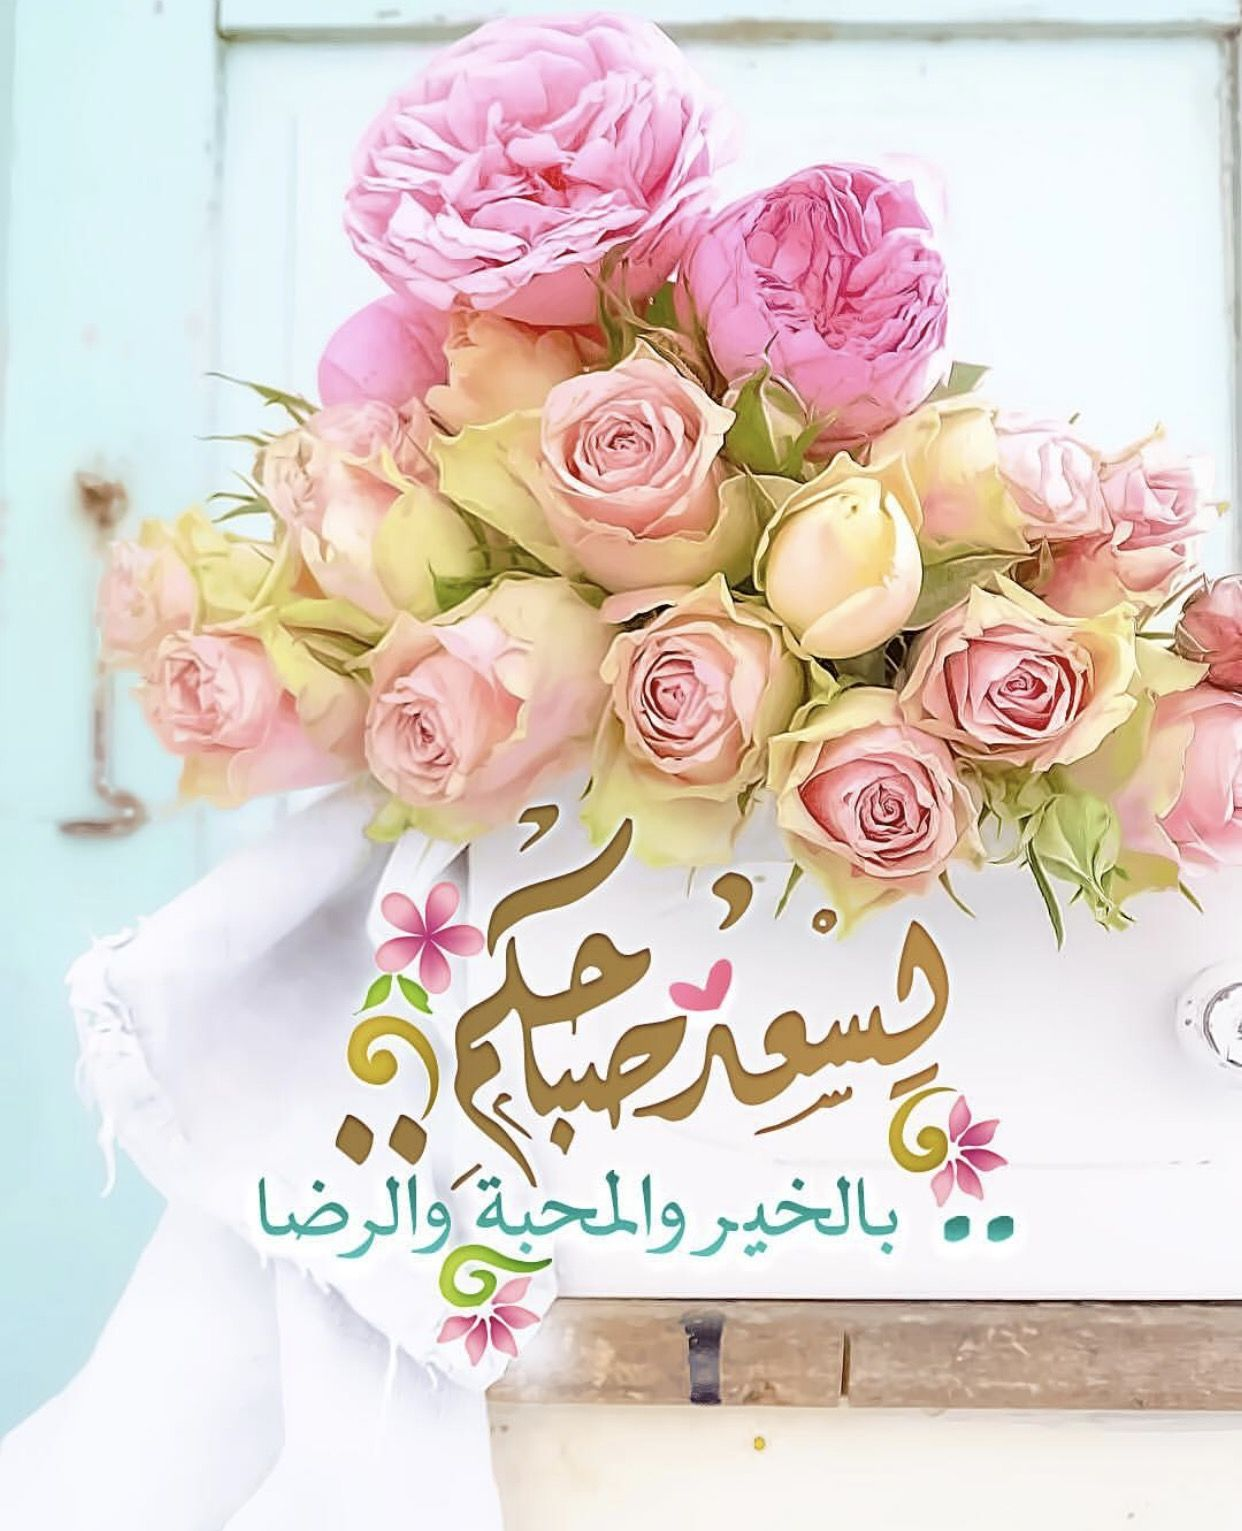 Pin By Nehal On صباح الخير Beautiful Morning Messages Good Morning Images Flowers Good Morning Beautiful Flowers